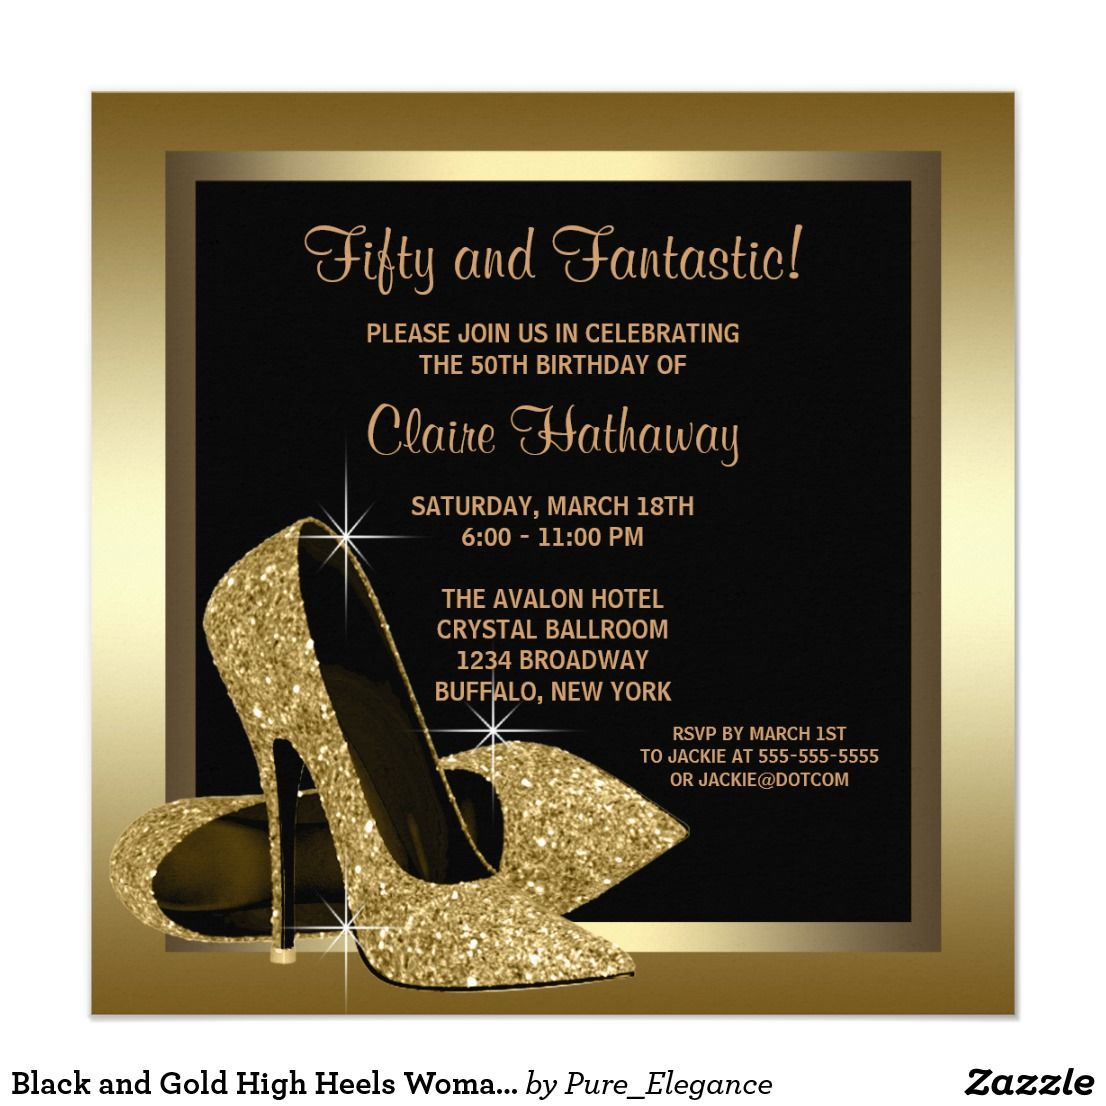 Black and Gold High Heels Womans 50th Birthday Card | 50th birthday ...